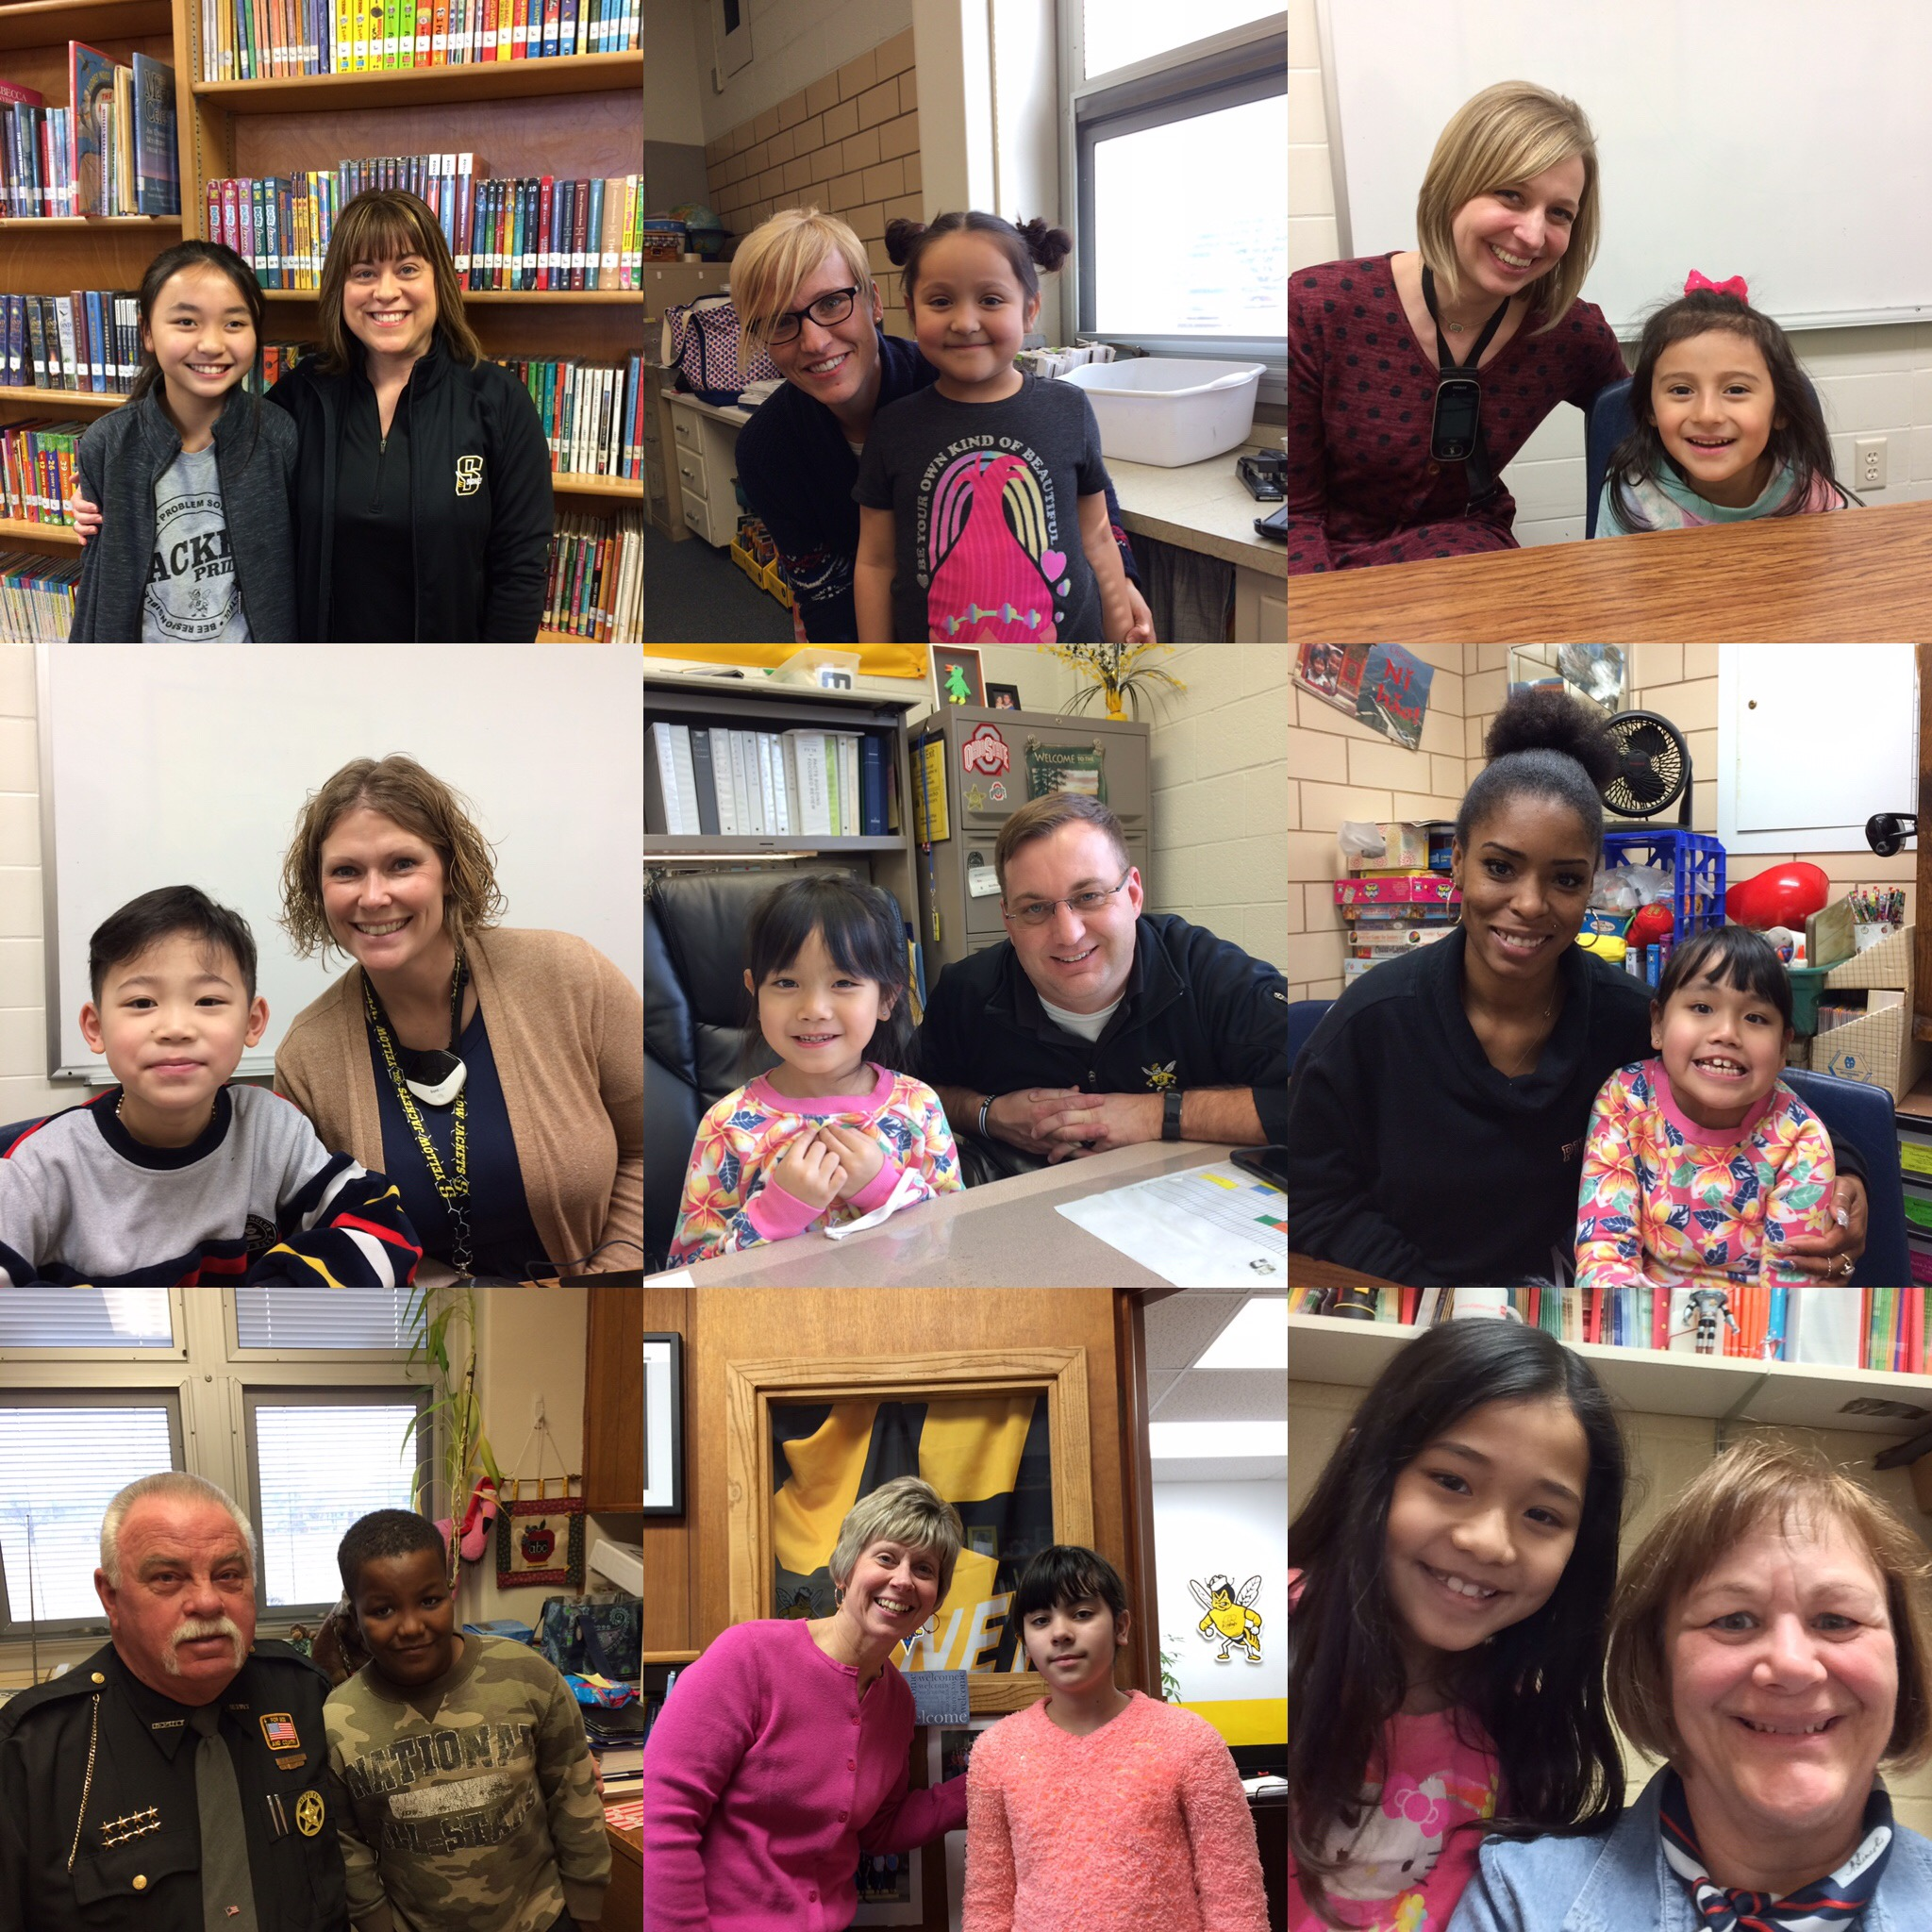 ELL students with the staff they interviewed - Marshall, Uhl, Geissel, Miller, Barr, Foy, Shepherd, Dembski, Stratton